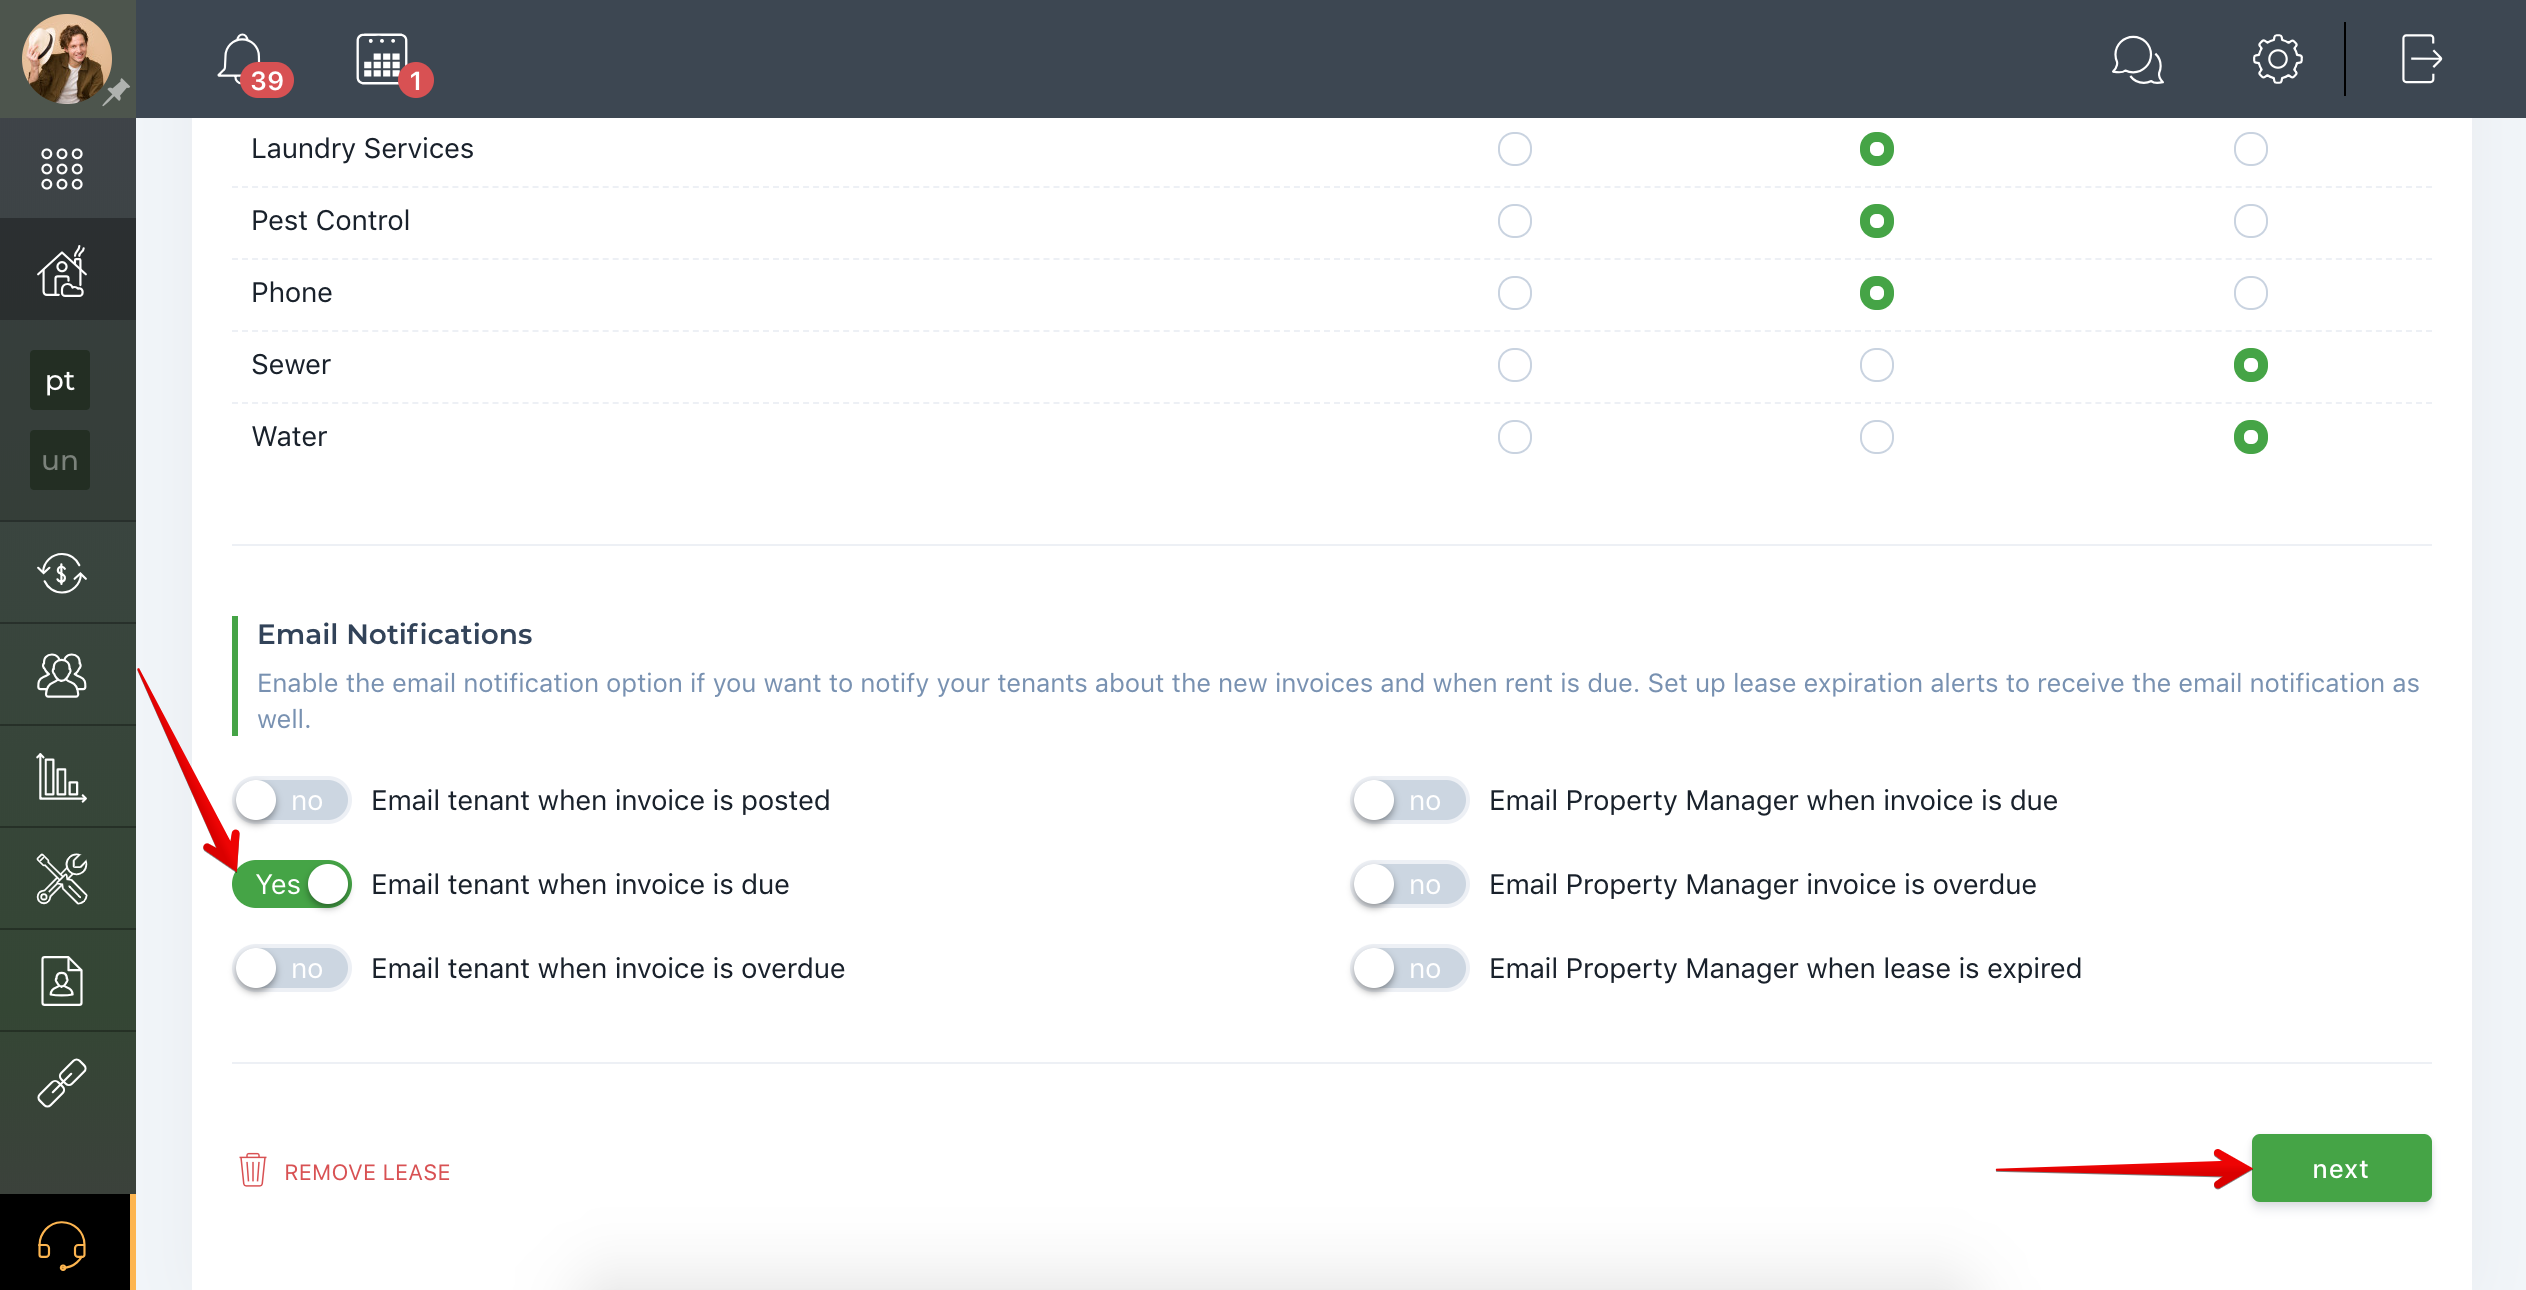 Can an email be automatically sent to the tenant when rent is due?